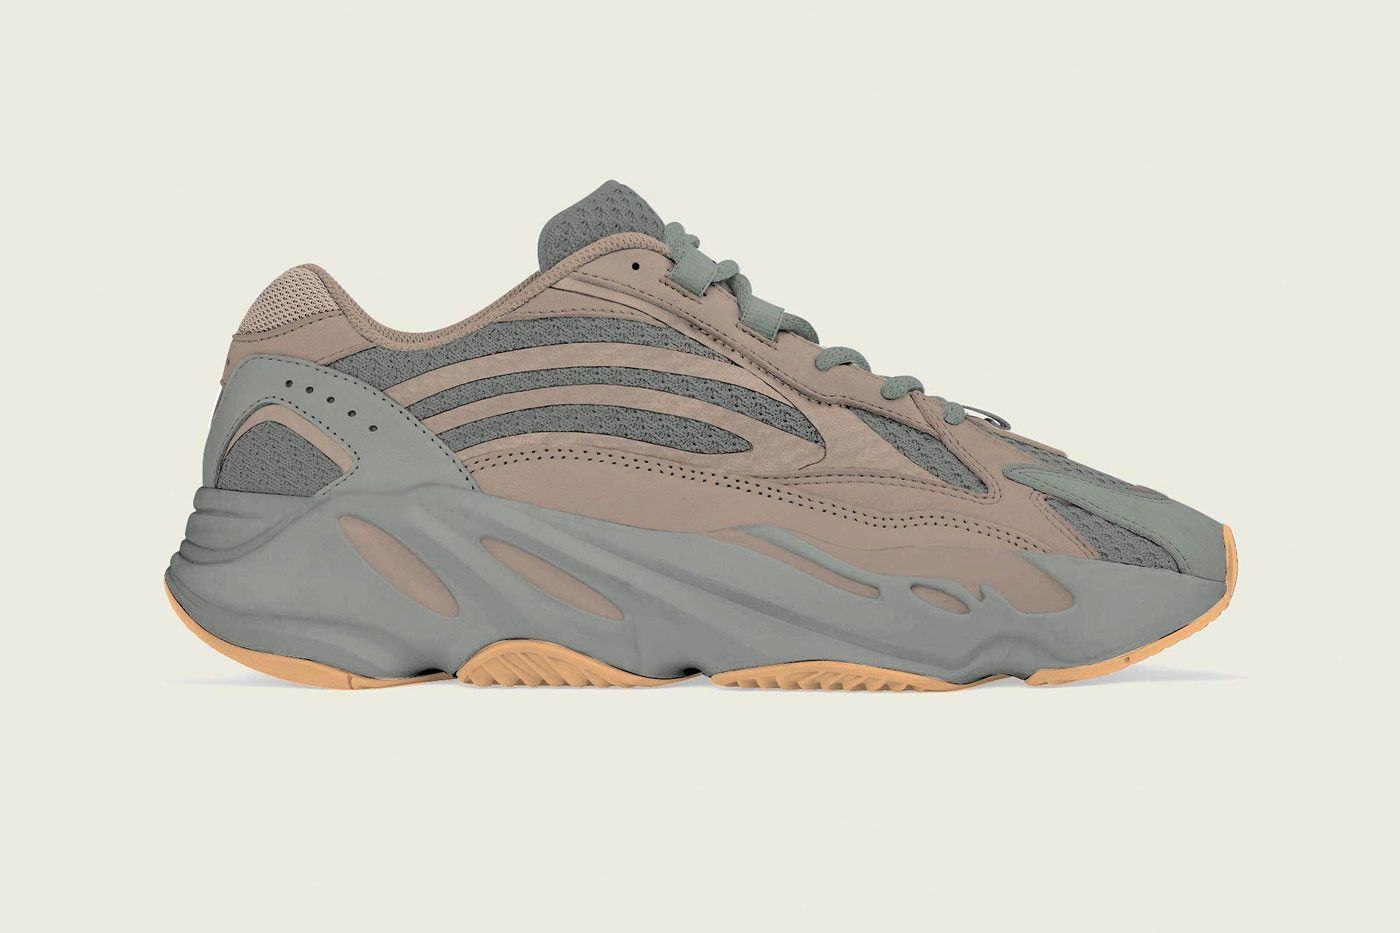 e9b9e75f28b05 adidas YEEZY BOOST 700 V2 Geode Release Info Date New 2019 Colorway grey  beige brown gum sole